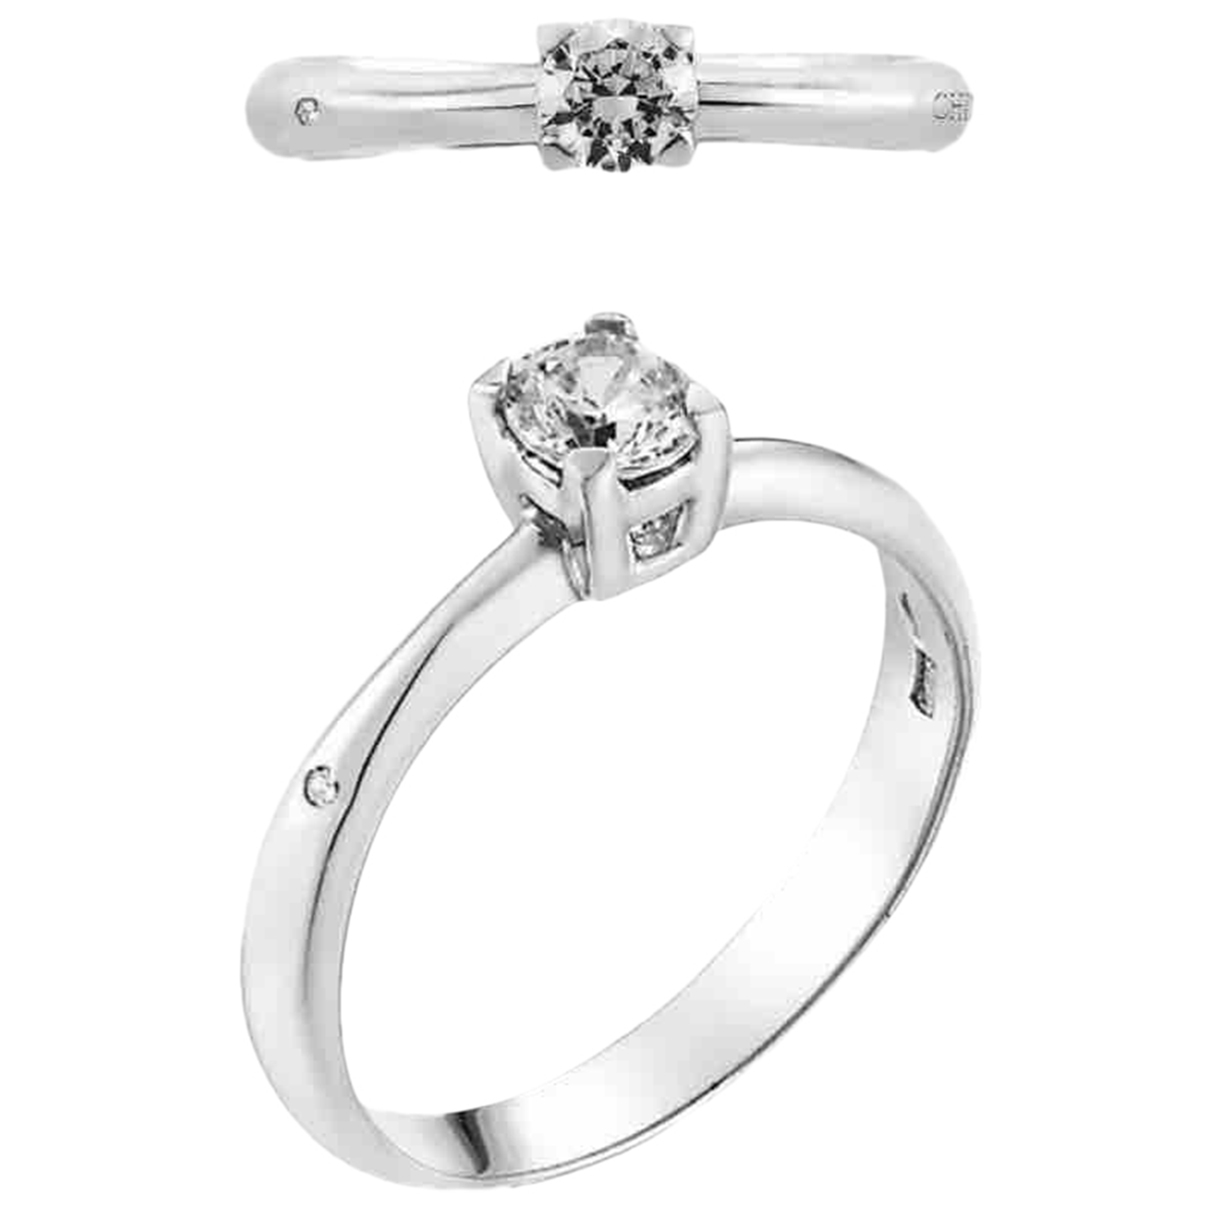 Chimento \N Ring in  Weiss Weissgold